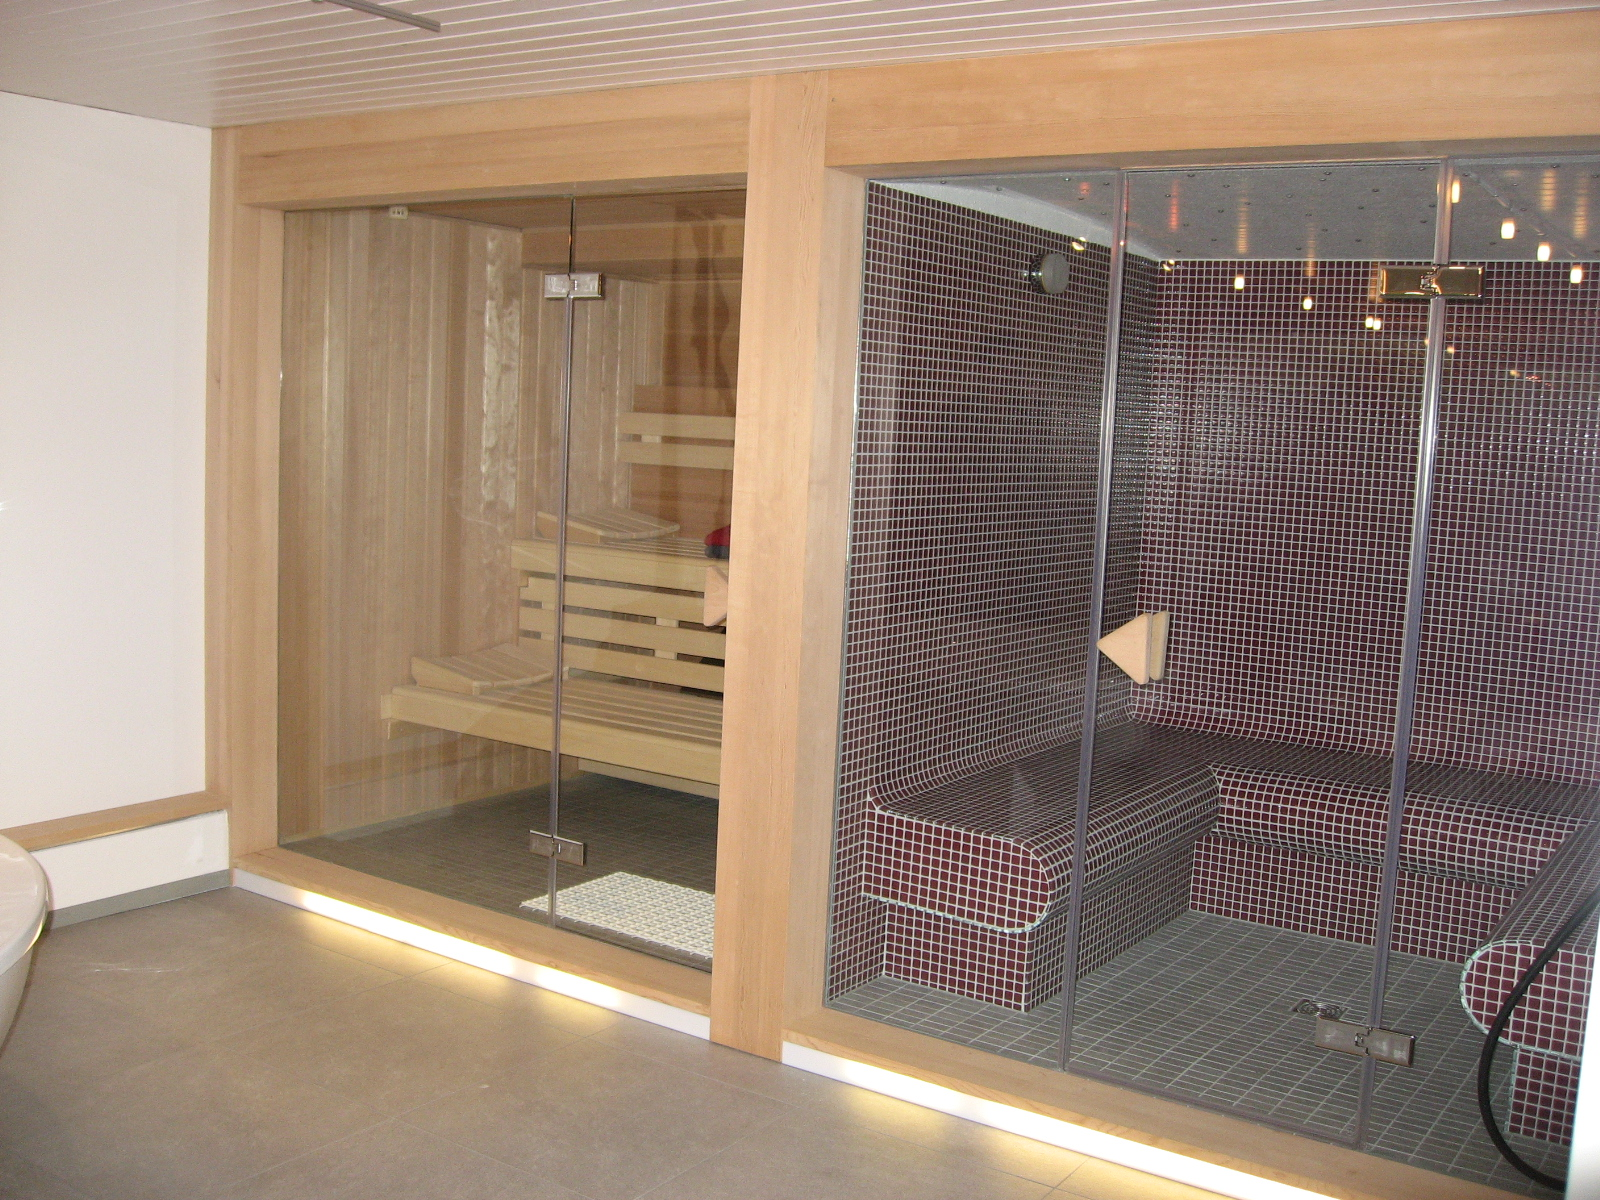 Sauna And Steam Room Flickr Photo Sharing